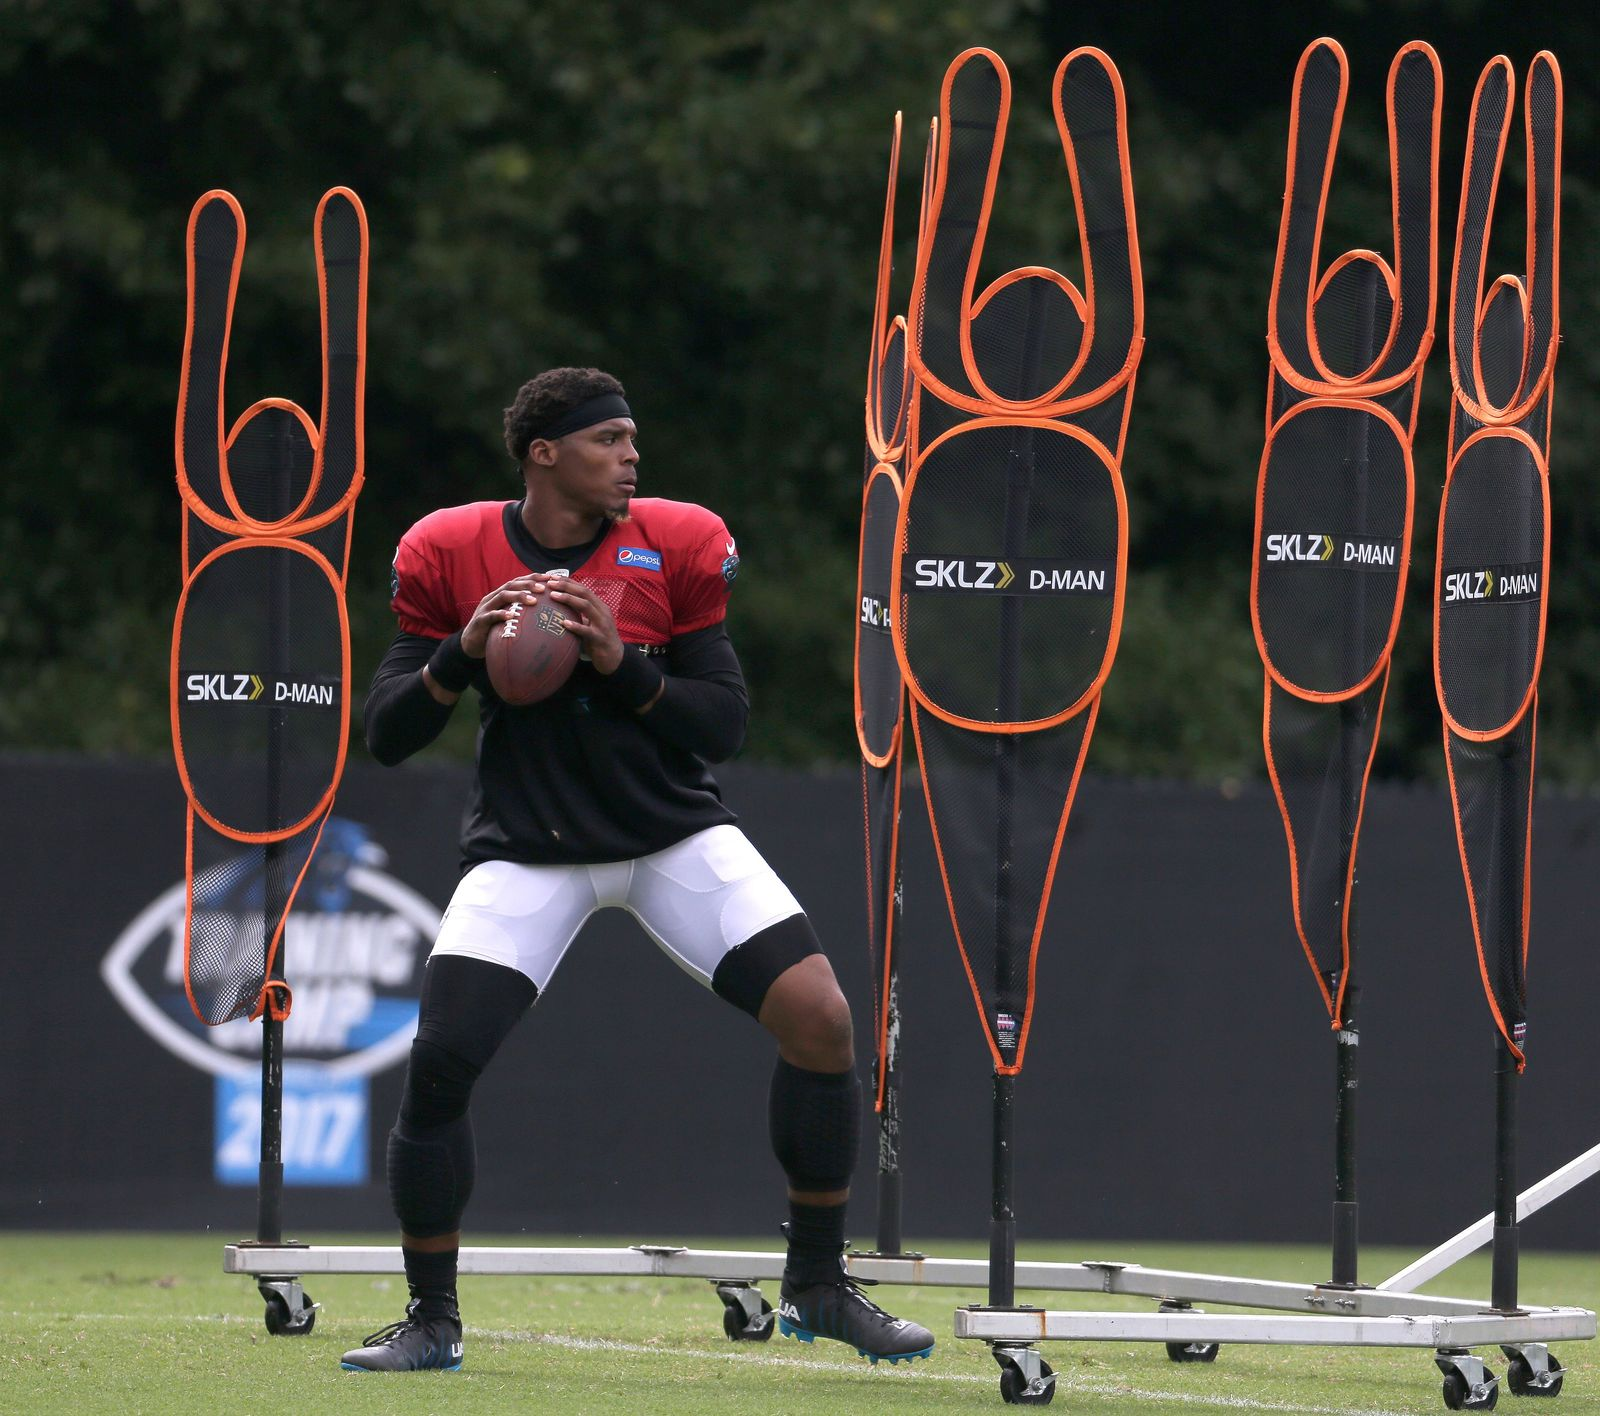 Carolina Panthers' Cam Newton (1) runs a drill during practice at the NFL team's football training camp at Wofford College in Spartanburg, S.C., Wednesday, Aug. 2, 2017. (AP Photo/Chuck Burton)